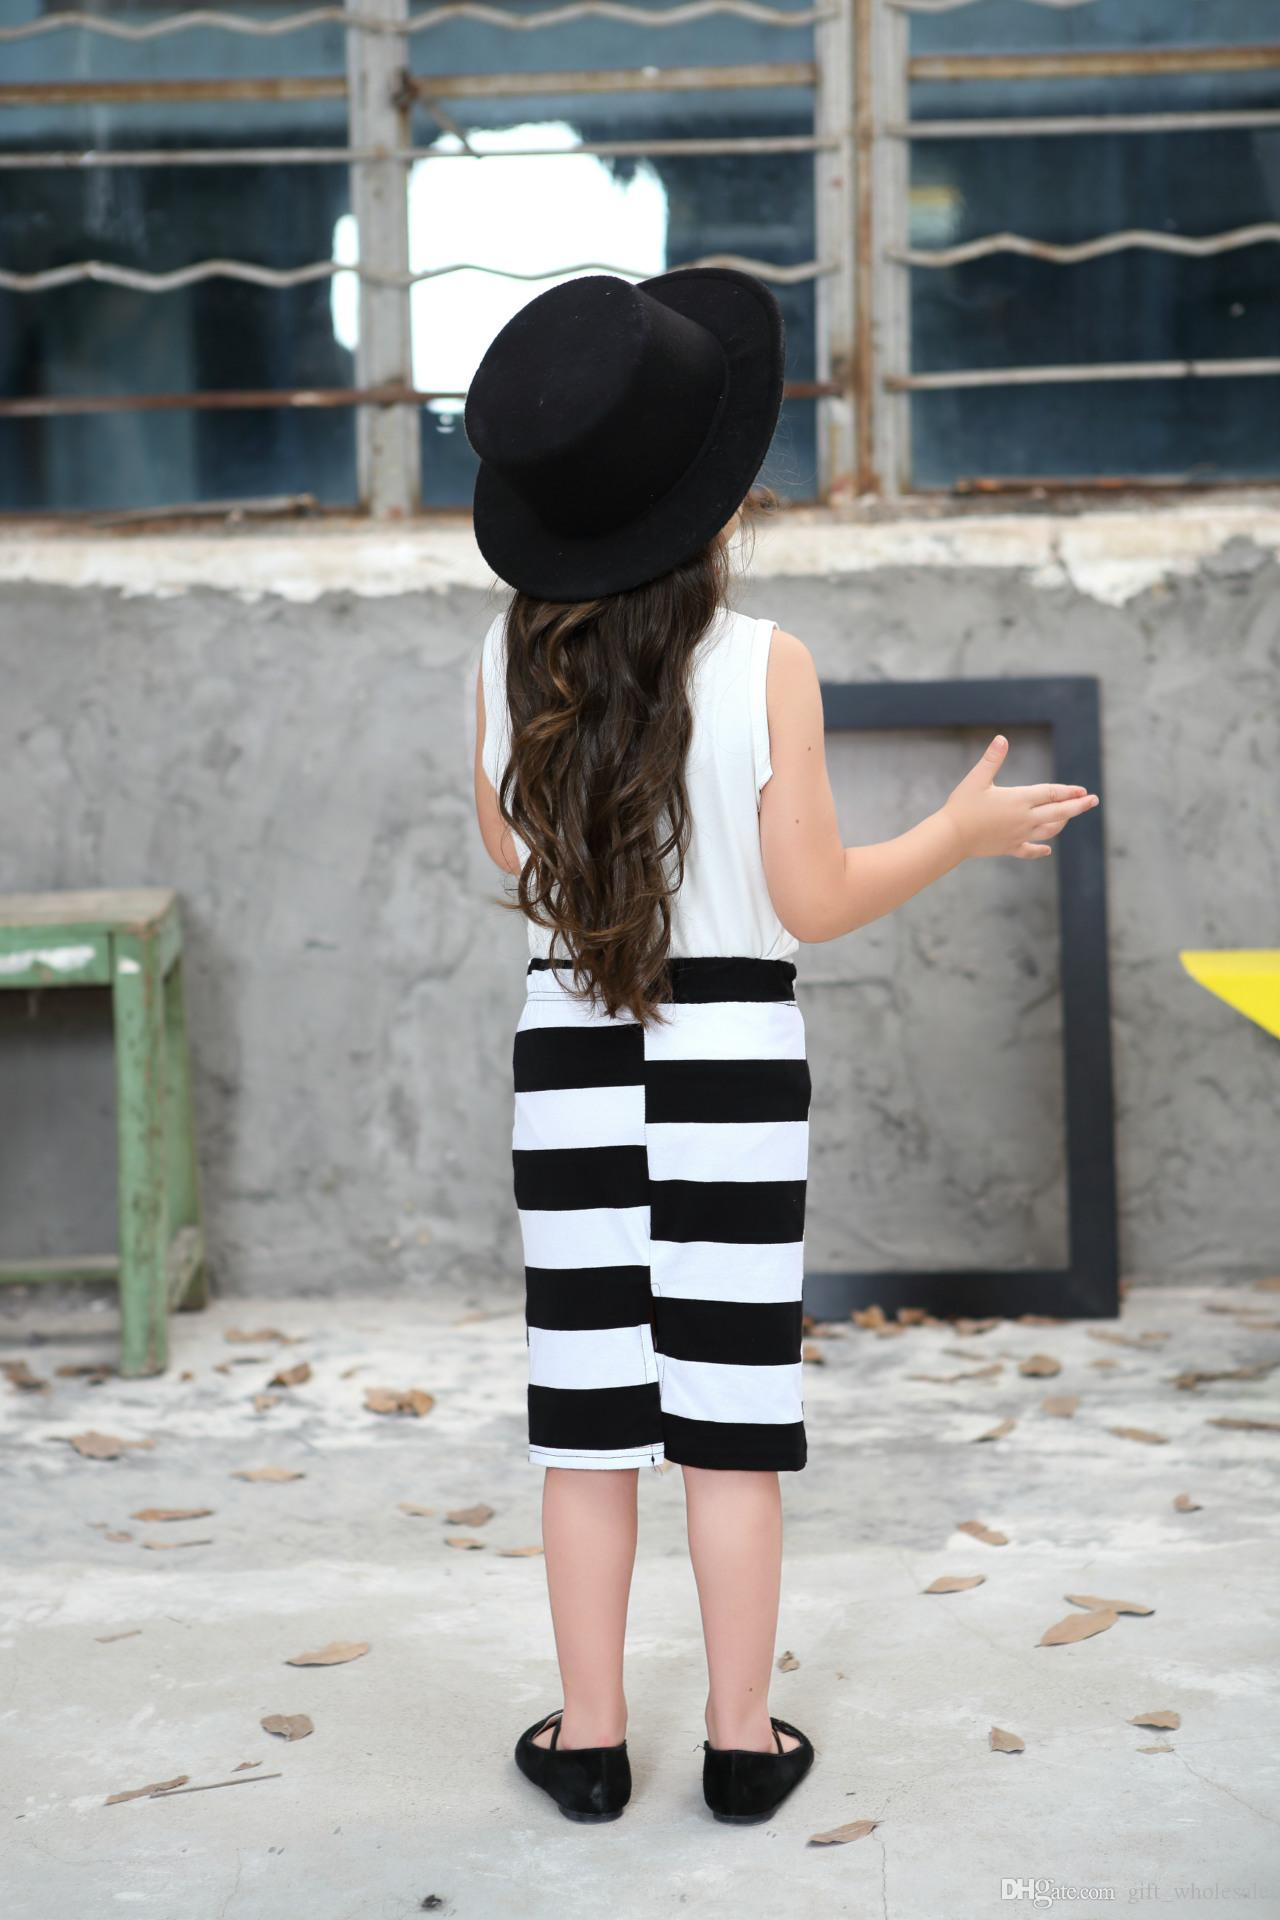 100-140cm new pattern fashion movement summer dress girls clothes baby black and white striped dress children Clothing